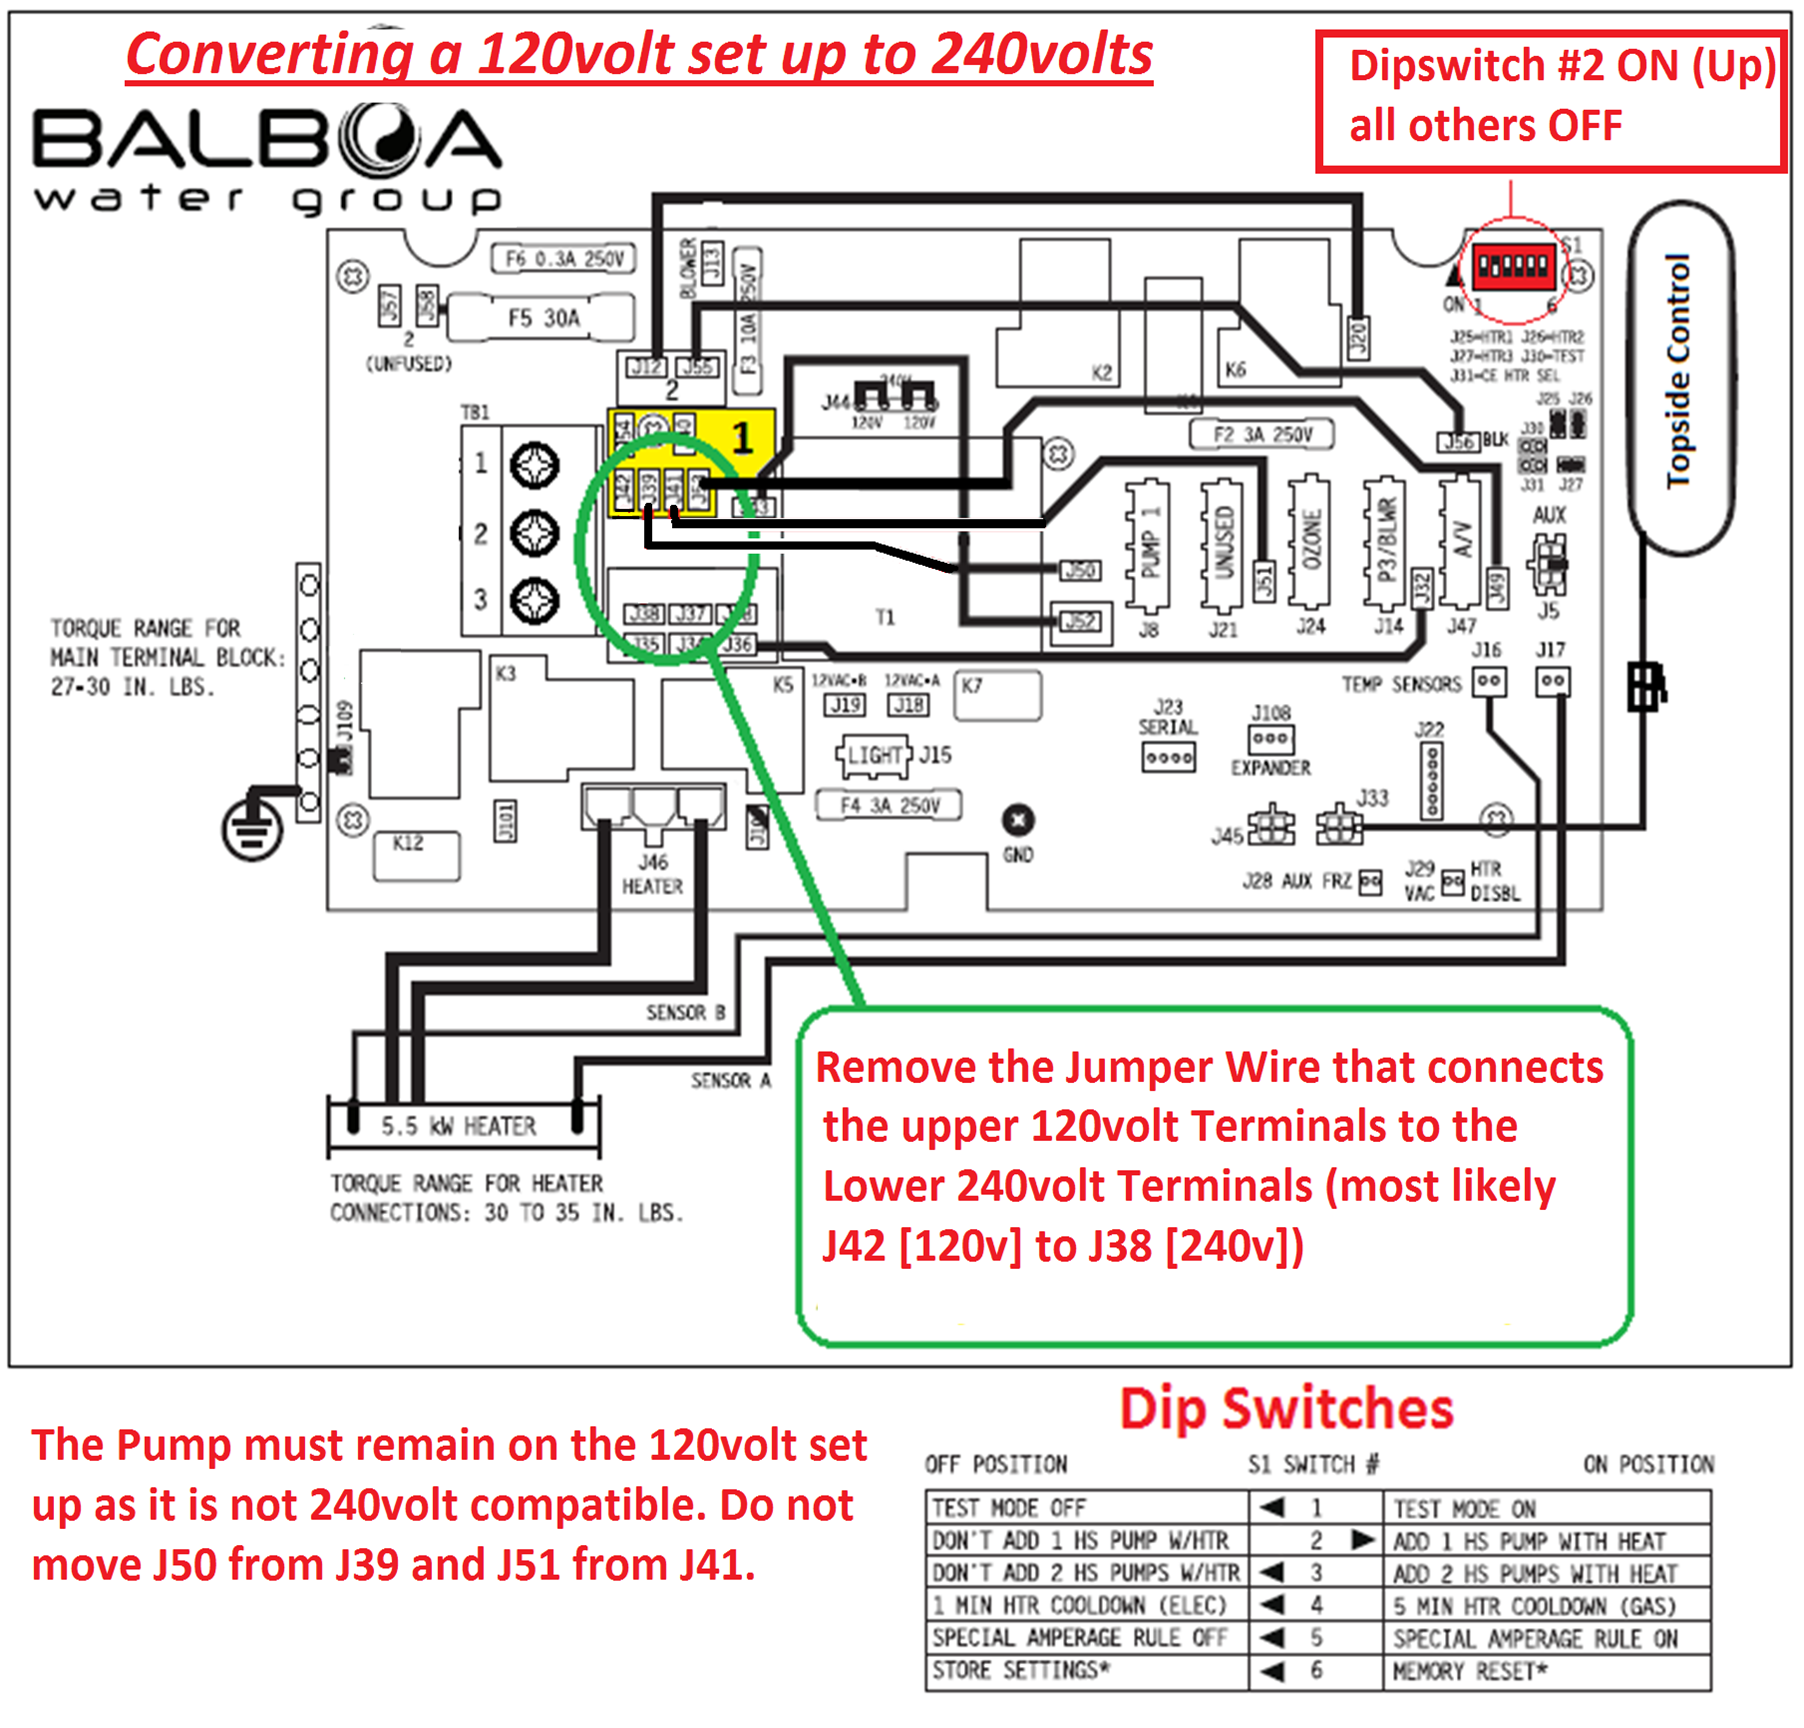 Electrical Installation - Converting a 120V Balboa BP to 240V ... on balboa control diagram, balboa control panel, spa diagram, balboa heater, balboa schematic,